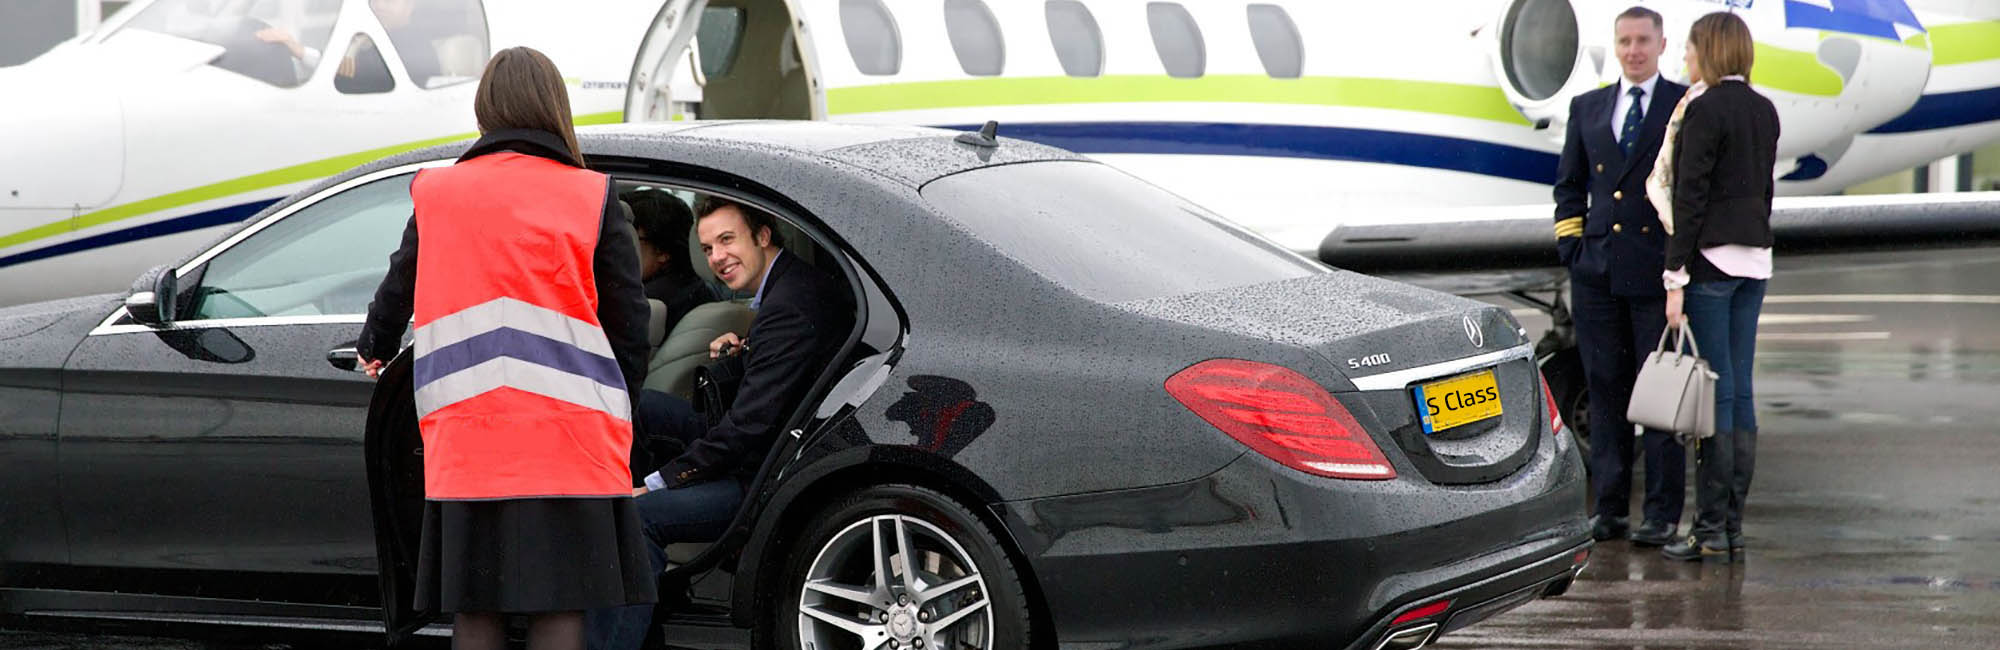 london airport transfers, southend, airport, london